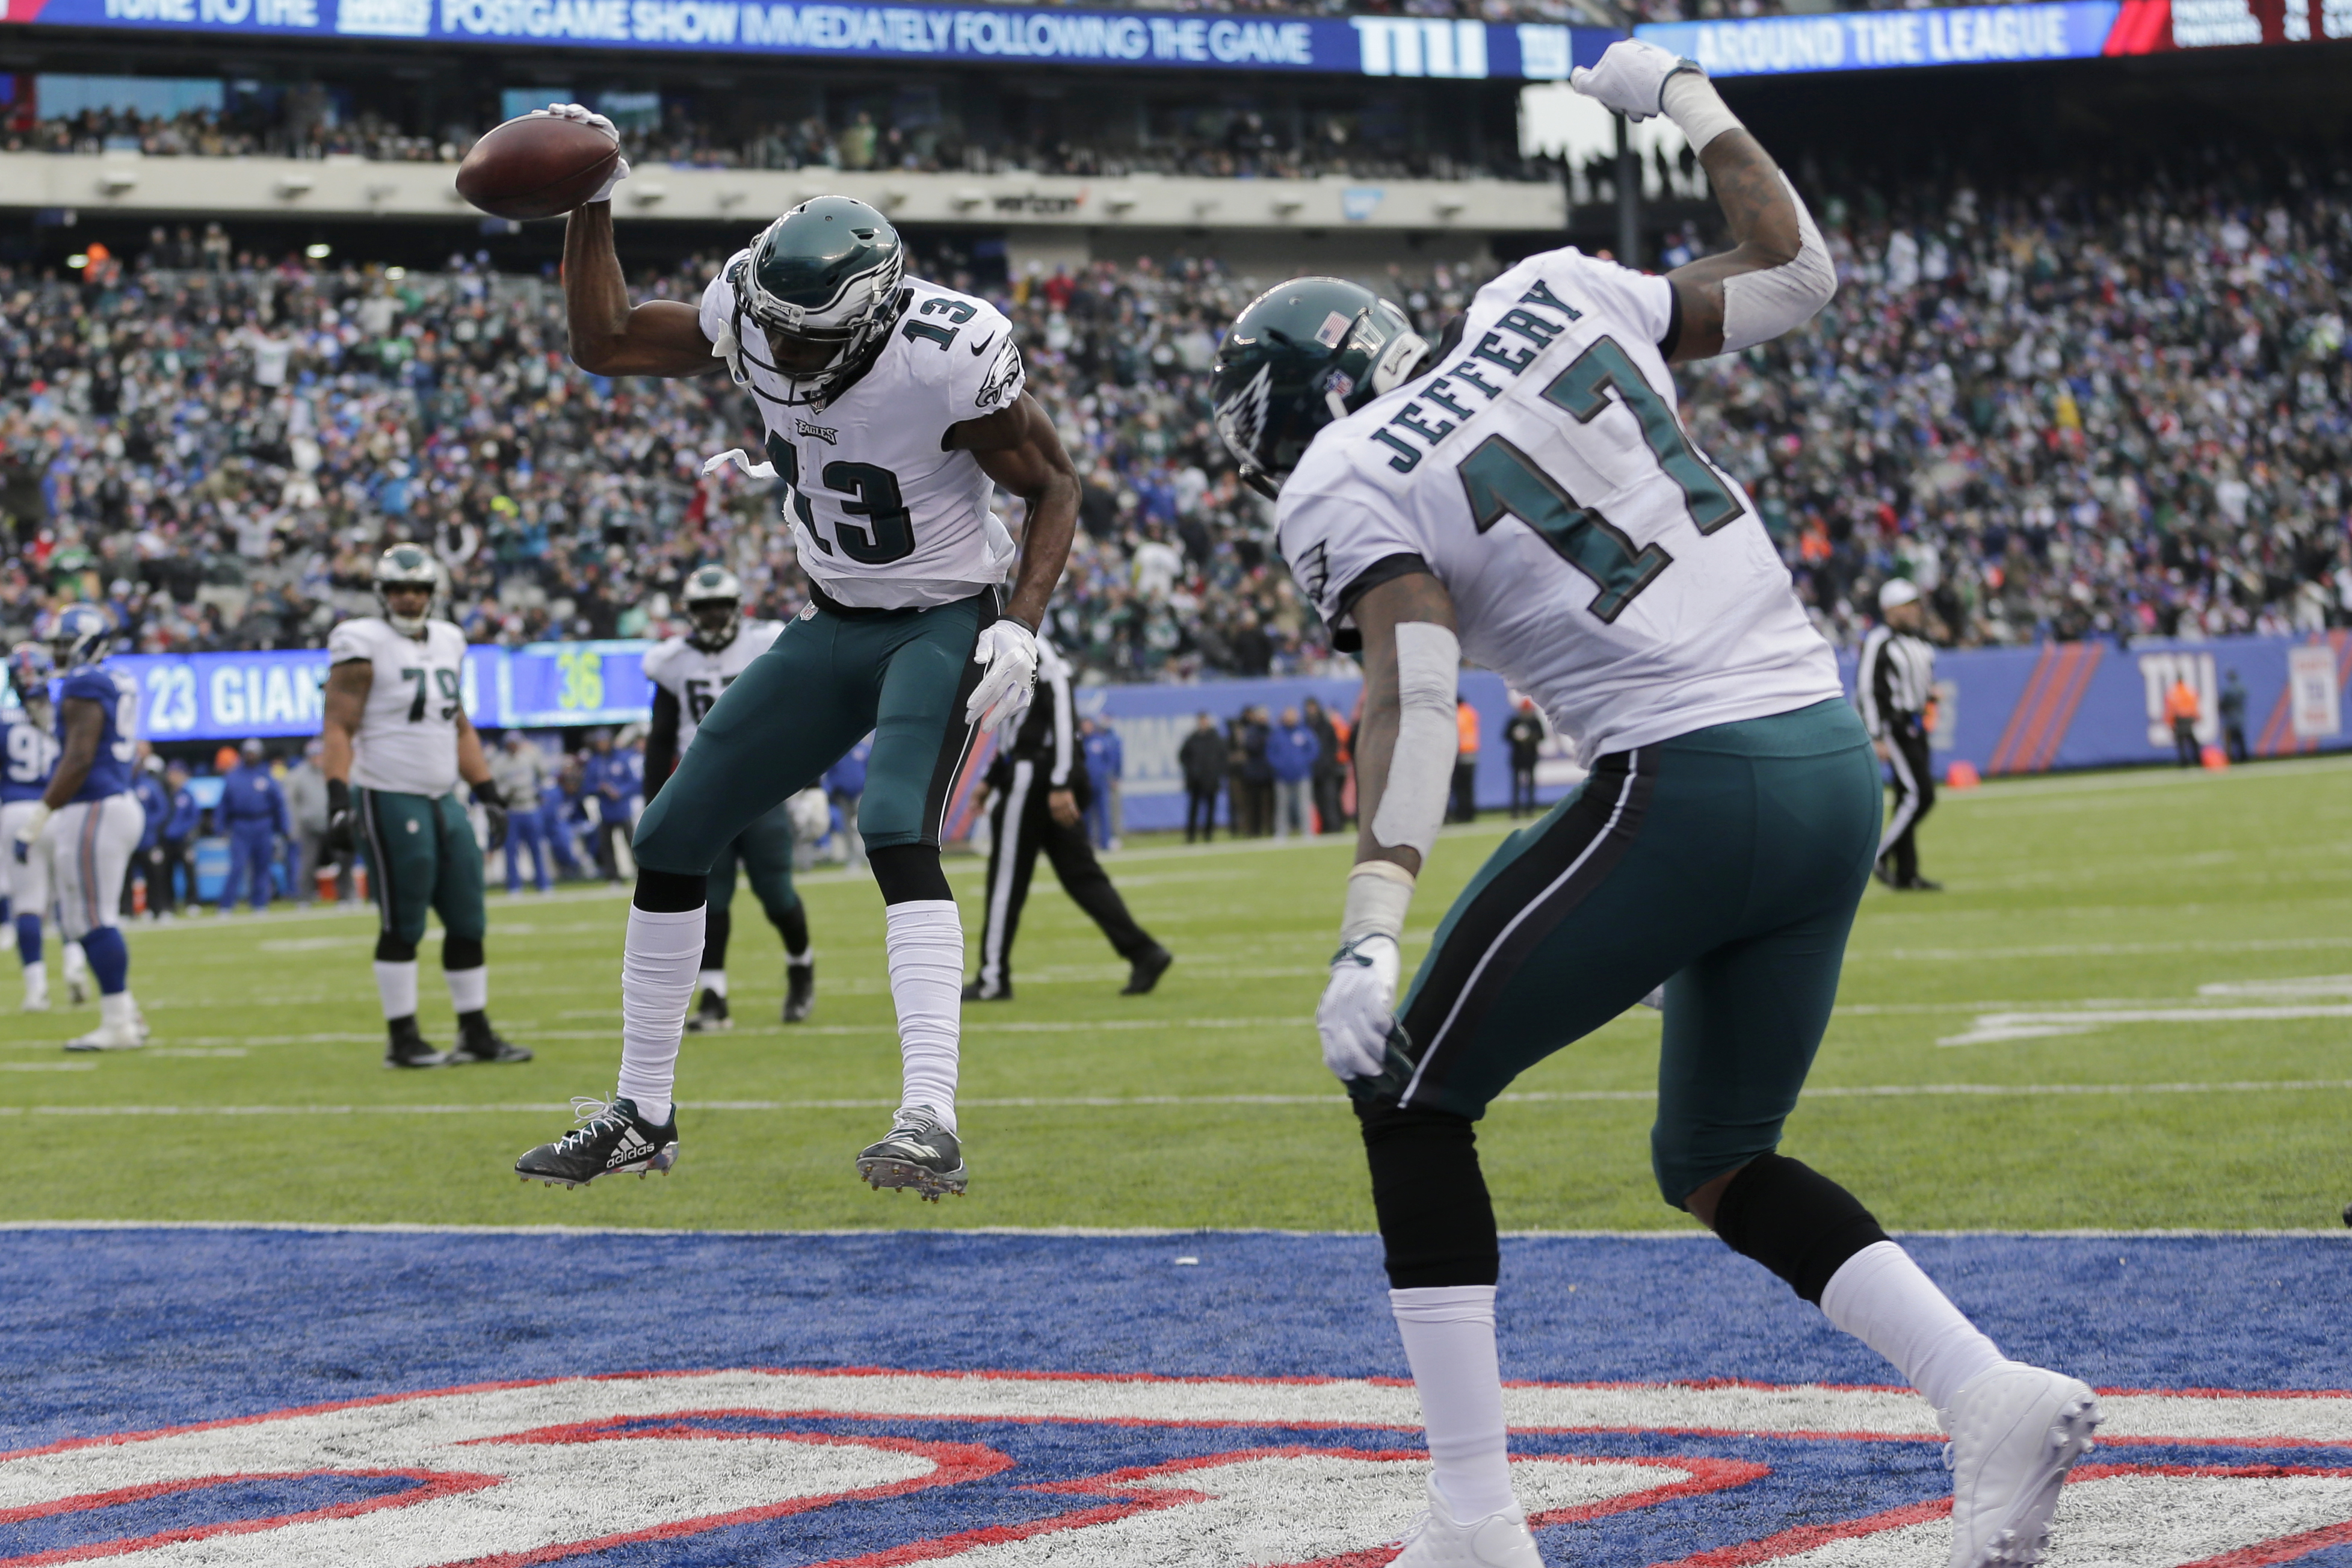 Eagles wide receiver Nelson Agholor (13) and wide receiver Alshon Jeffery (17) celebrate after Agholor caught a touchdown pass during the Eagles´ 34-29 win over the Giants on Sunday.